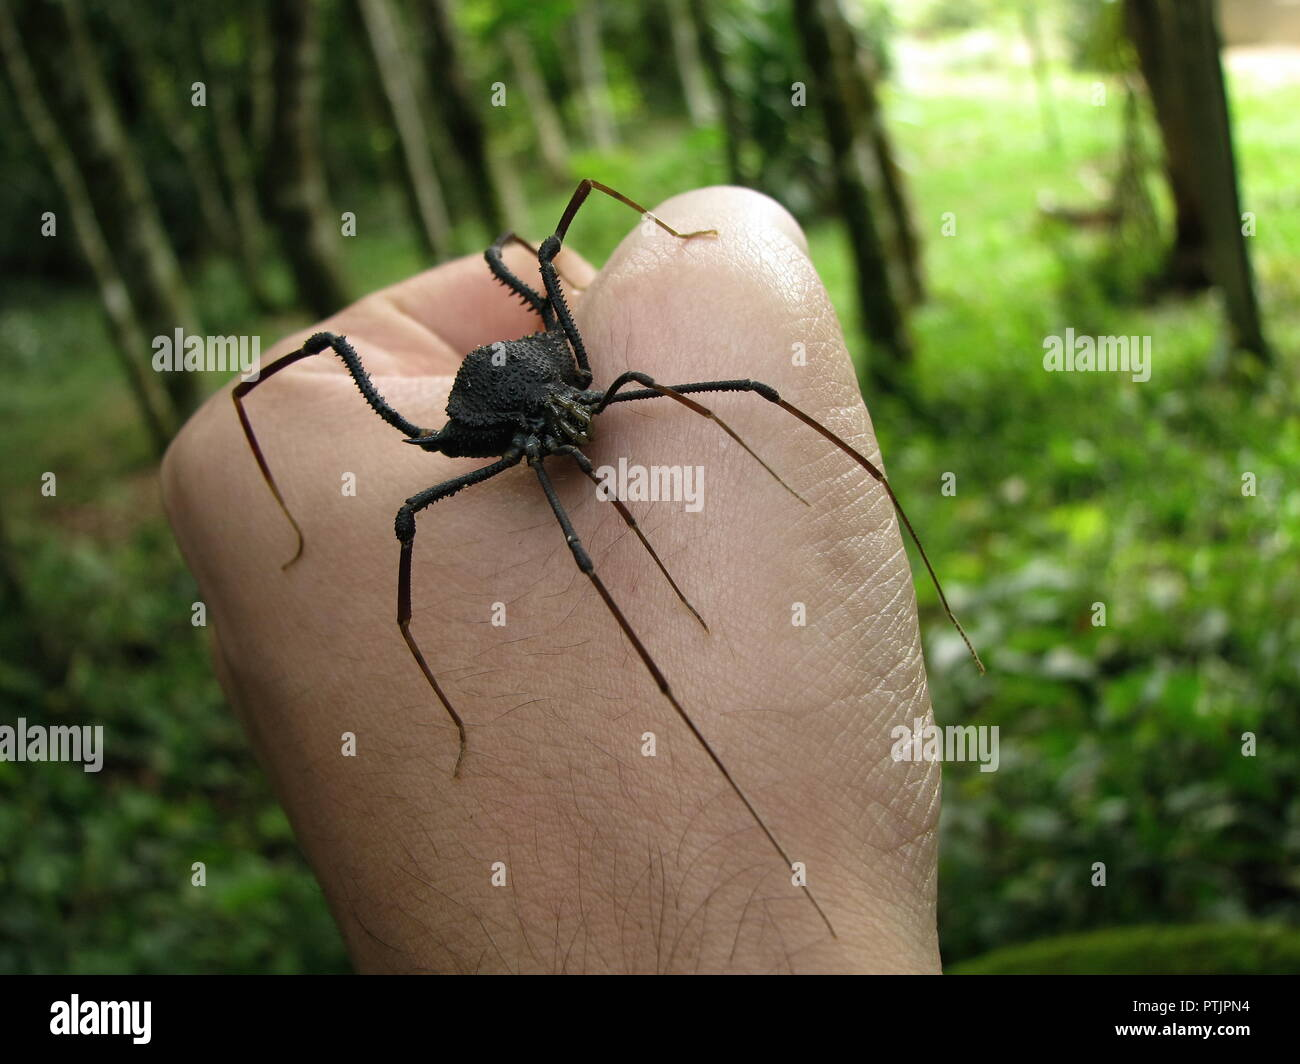 Big harvestman, an arachnid superficially similar to spiders and with the same common name of daddy long legs, being handled on a forest background. - Stock Image